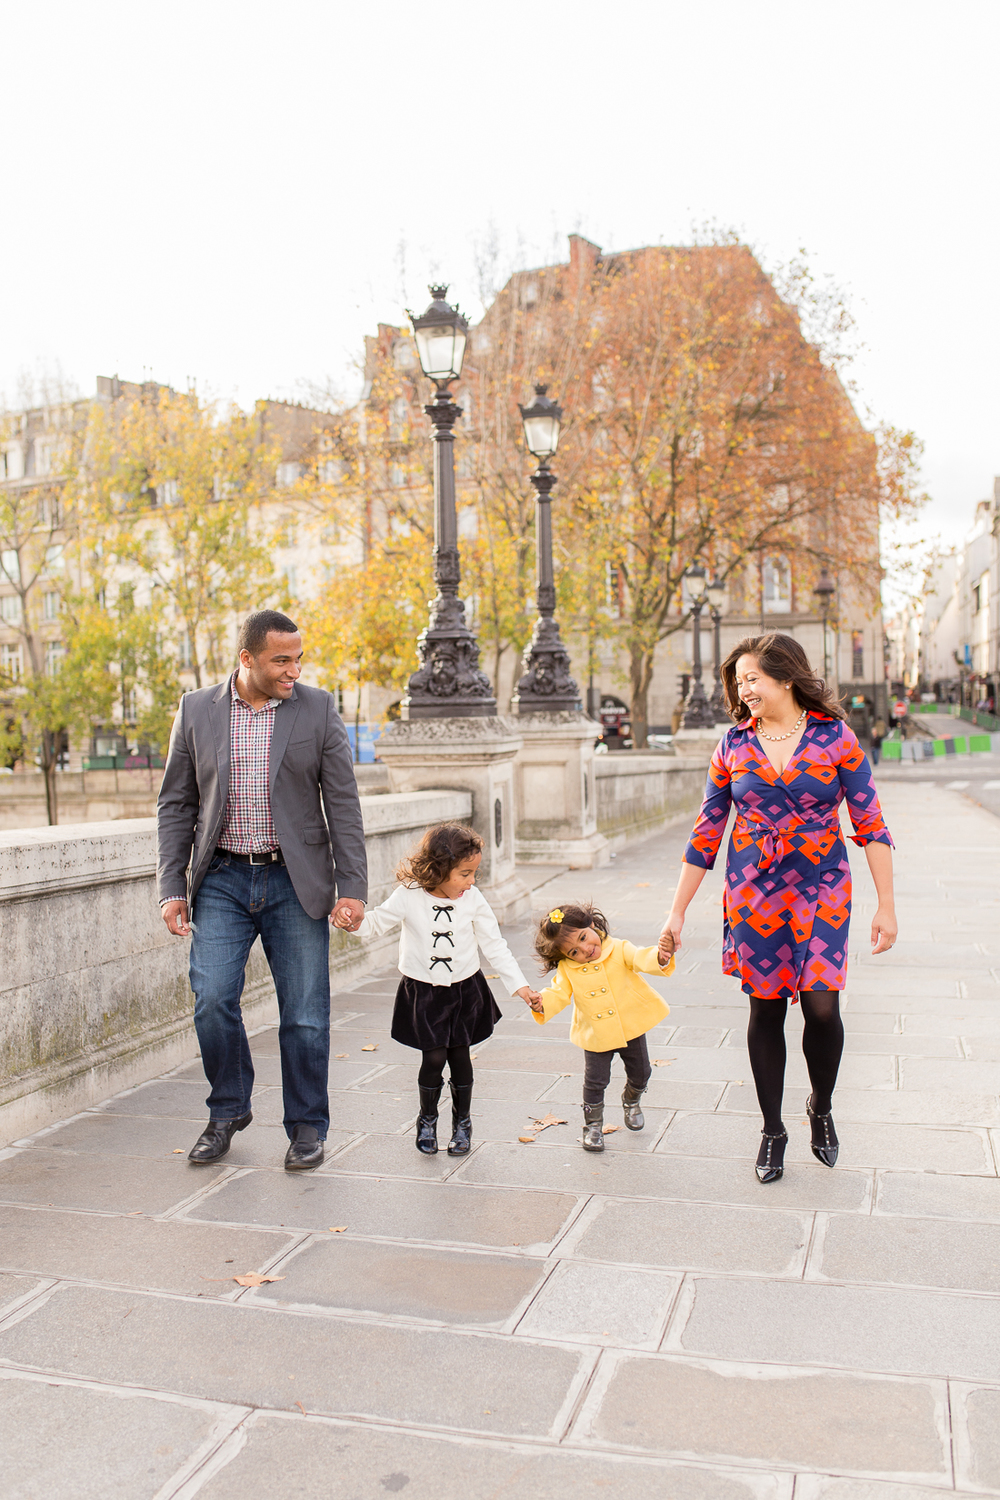 spring-fall-family-paris-eiffel-tower-photo-session-outfit-inspiratn-23